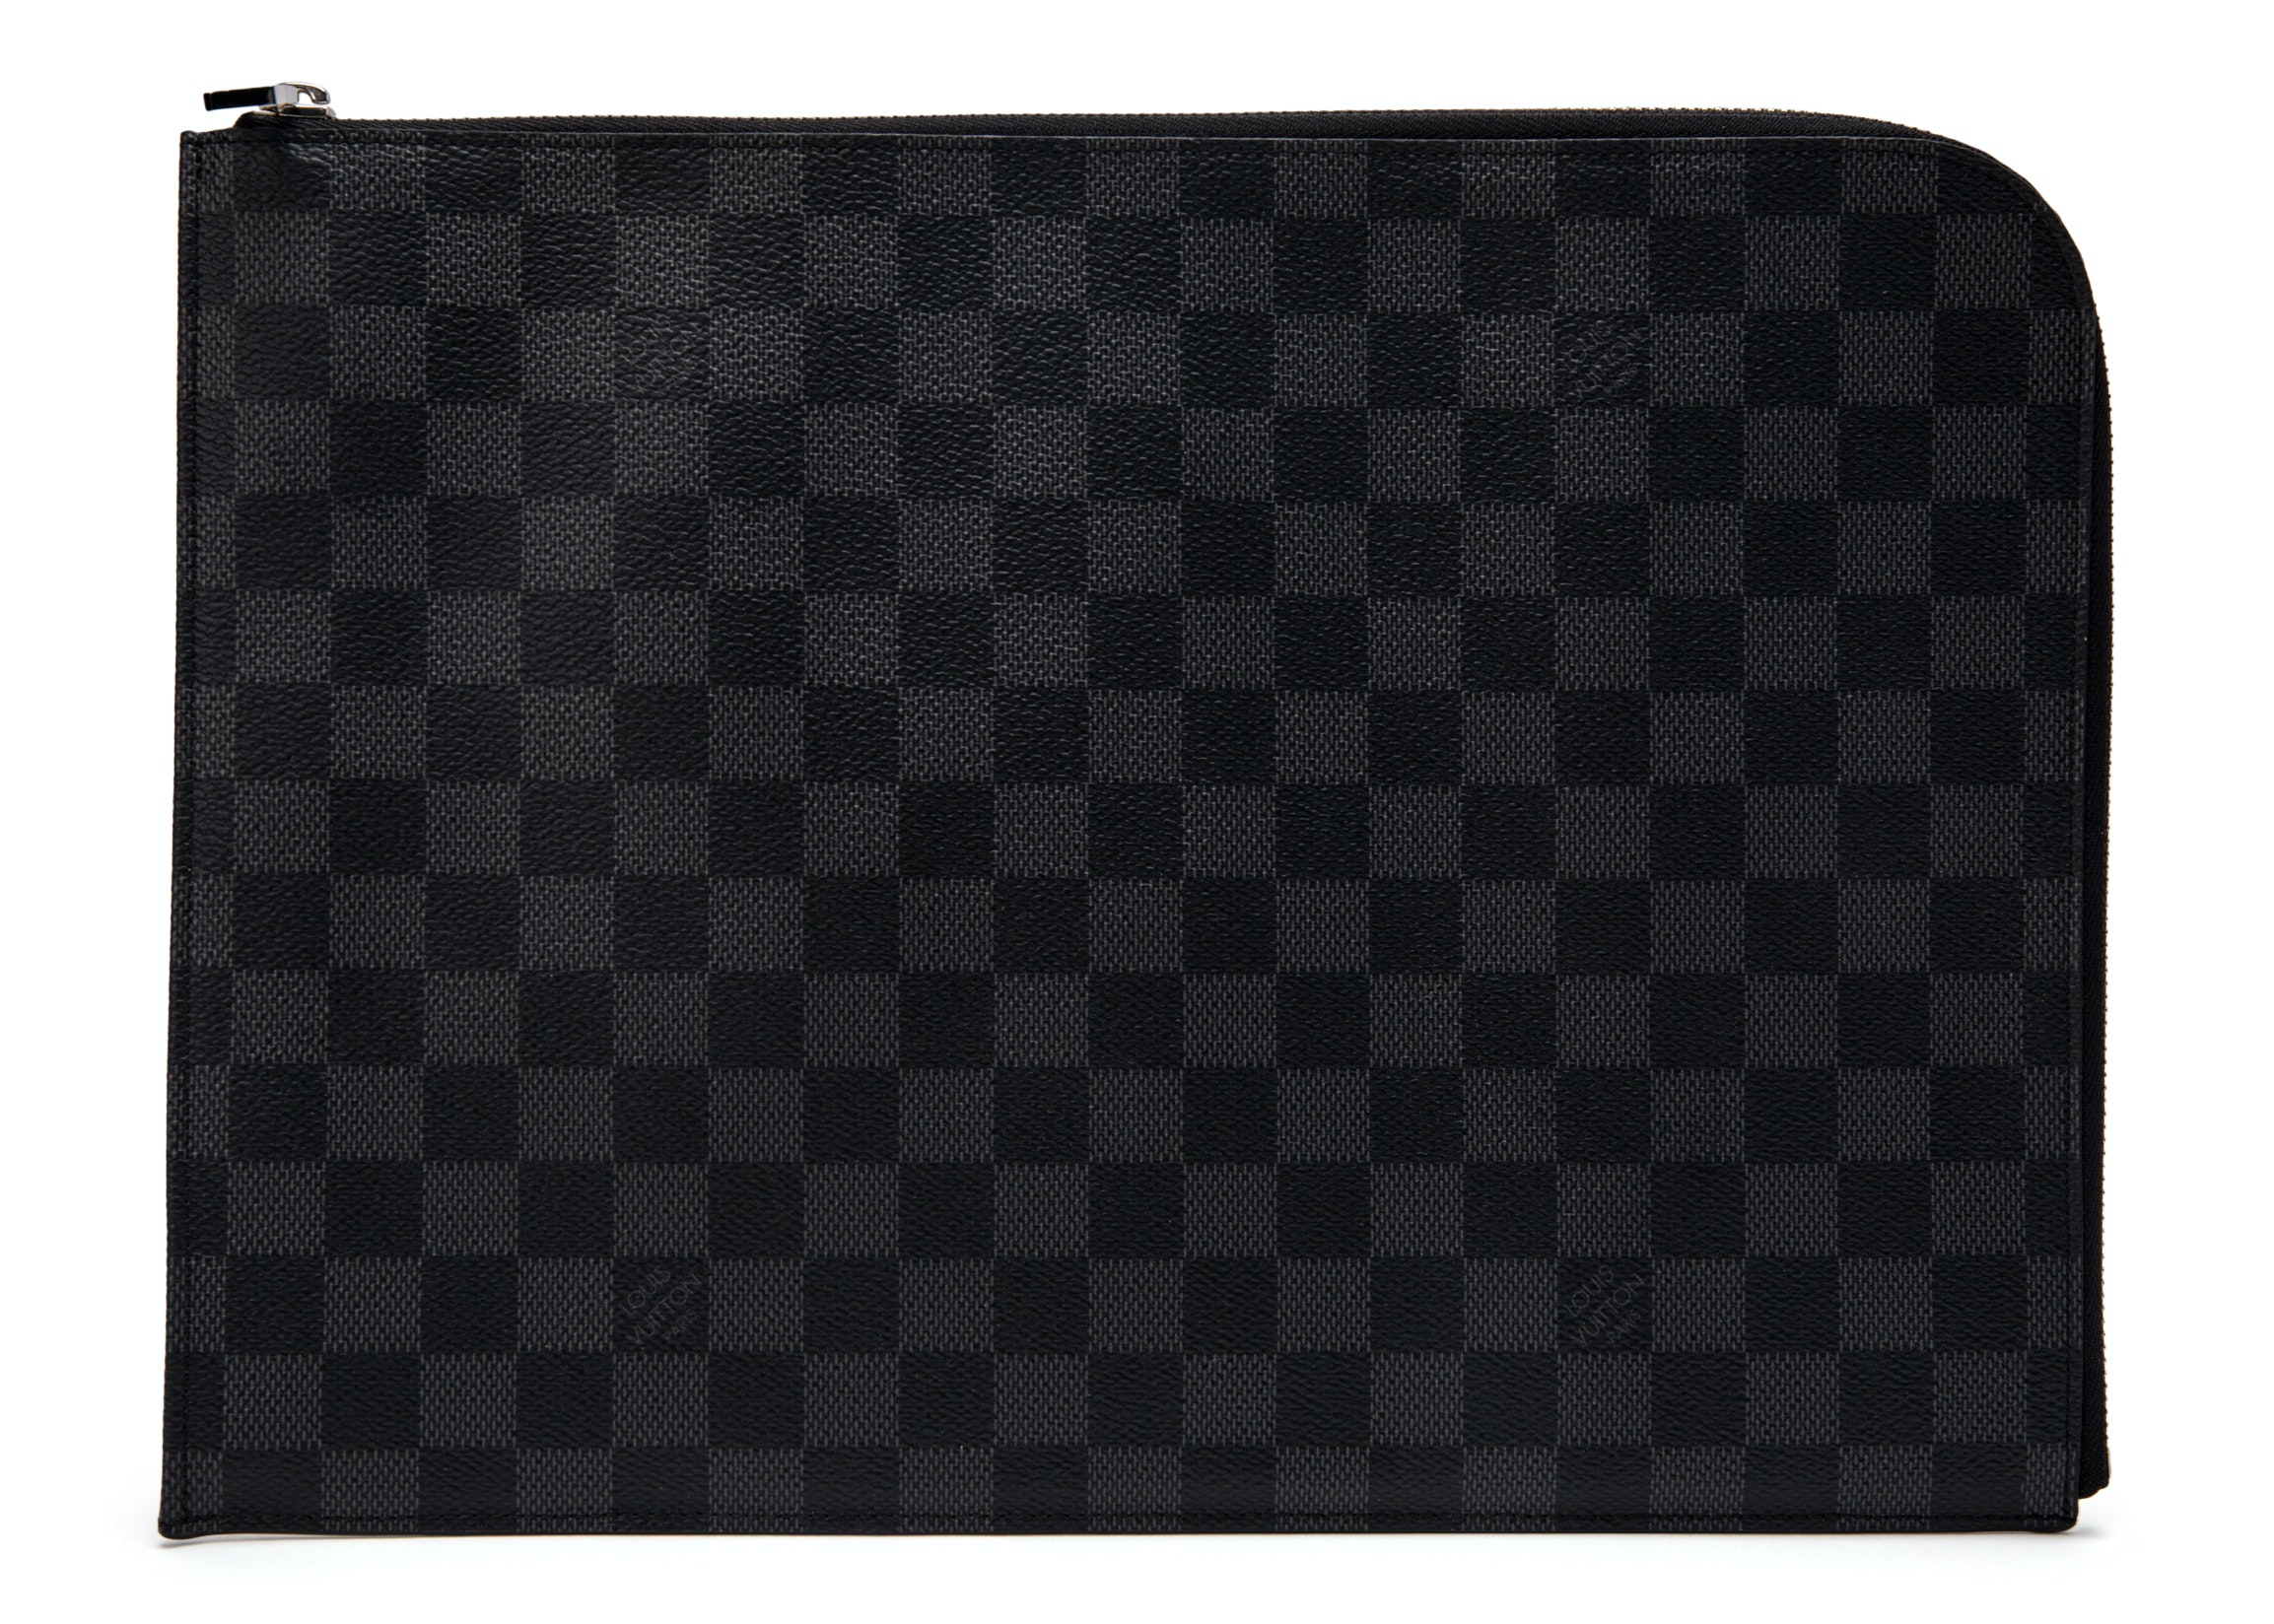 Damier Graphite GM Black